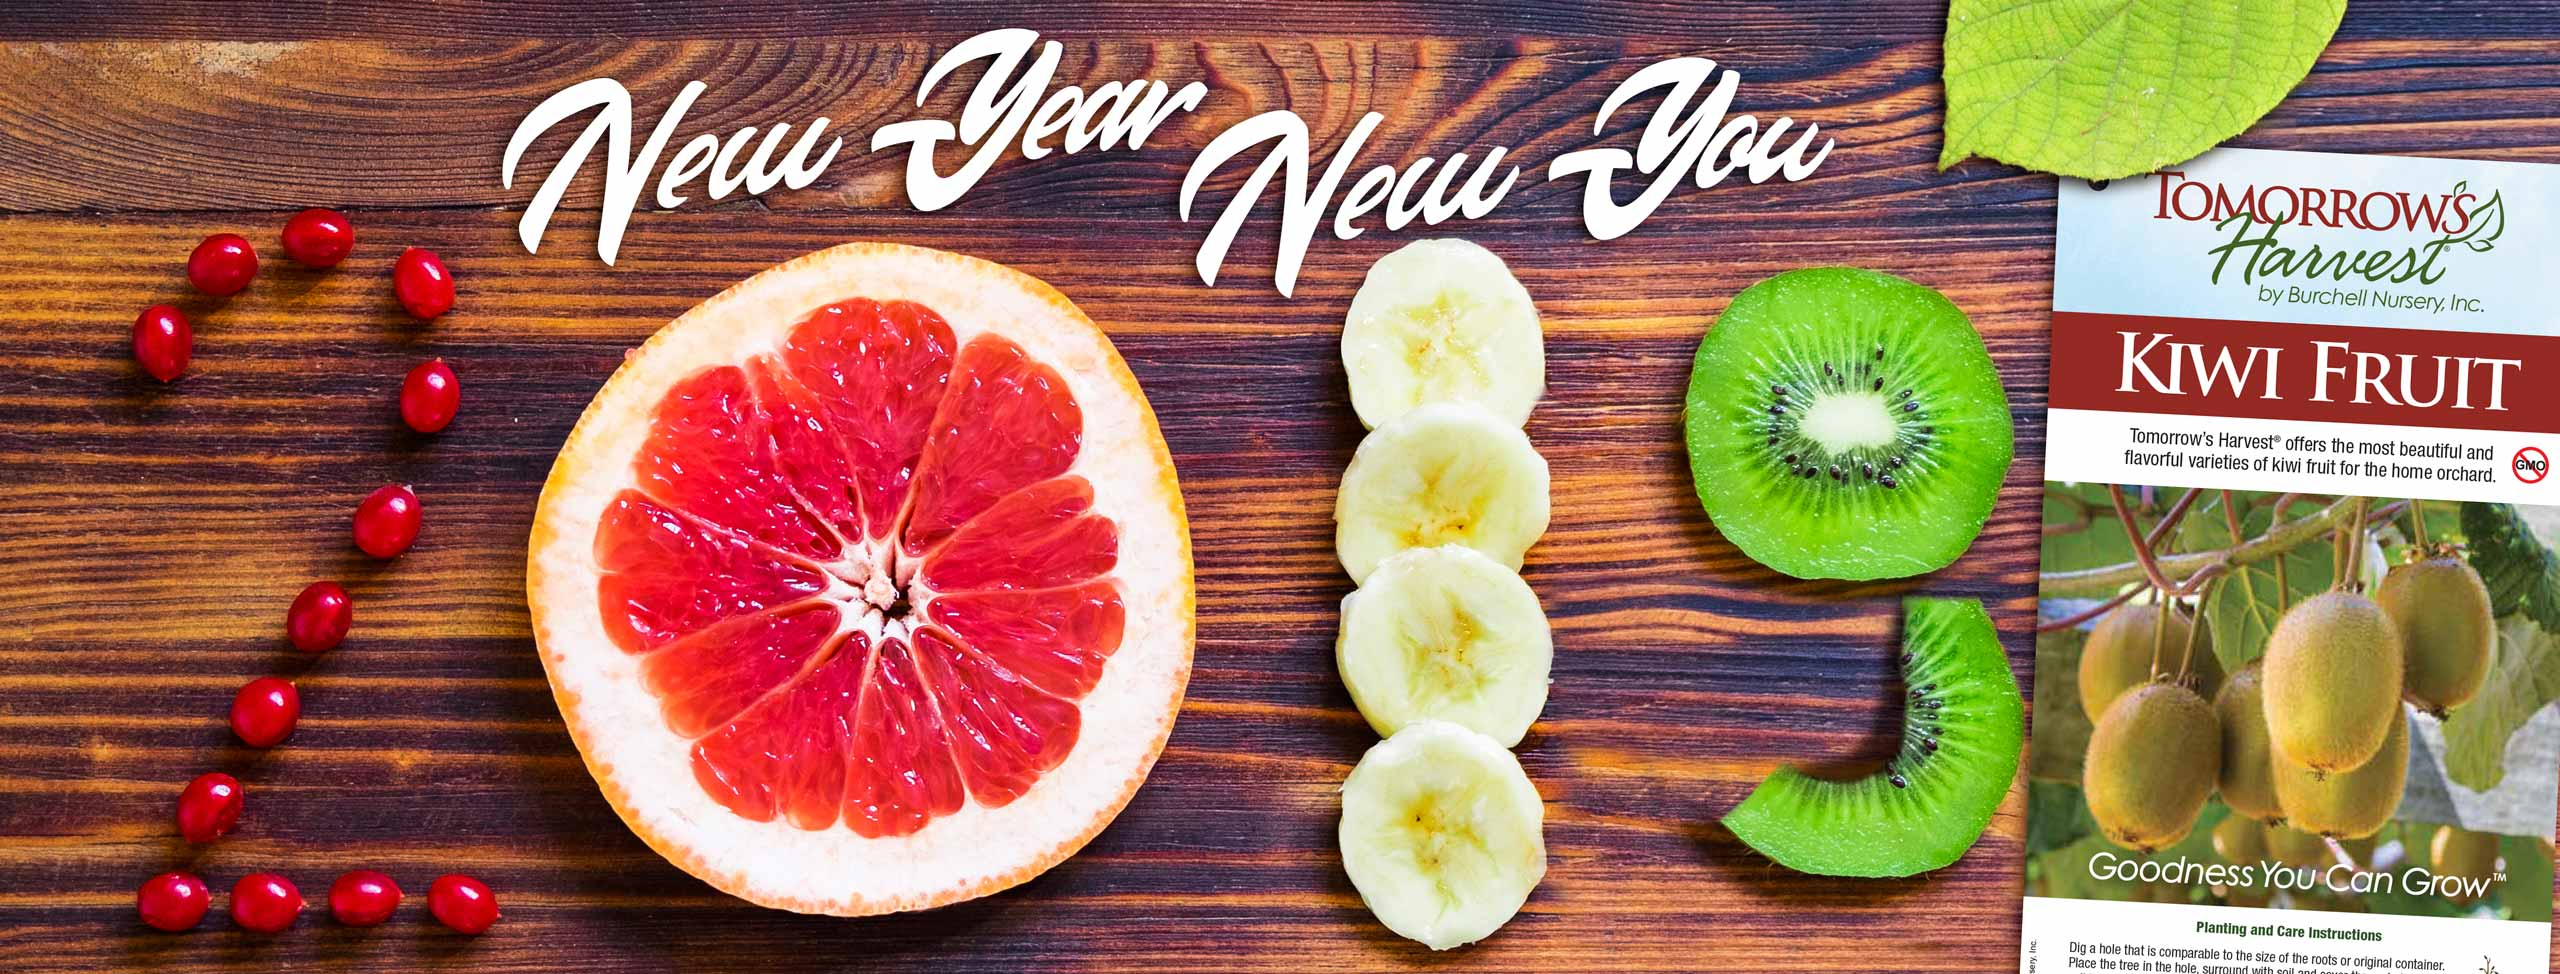 New Year - New You - 2019 - Happy New Year from Tomorrow's Harvest and Burchell Nursery